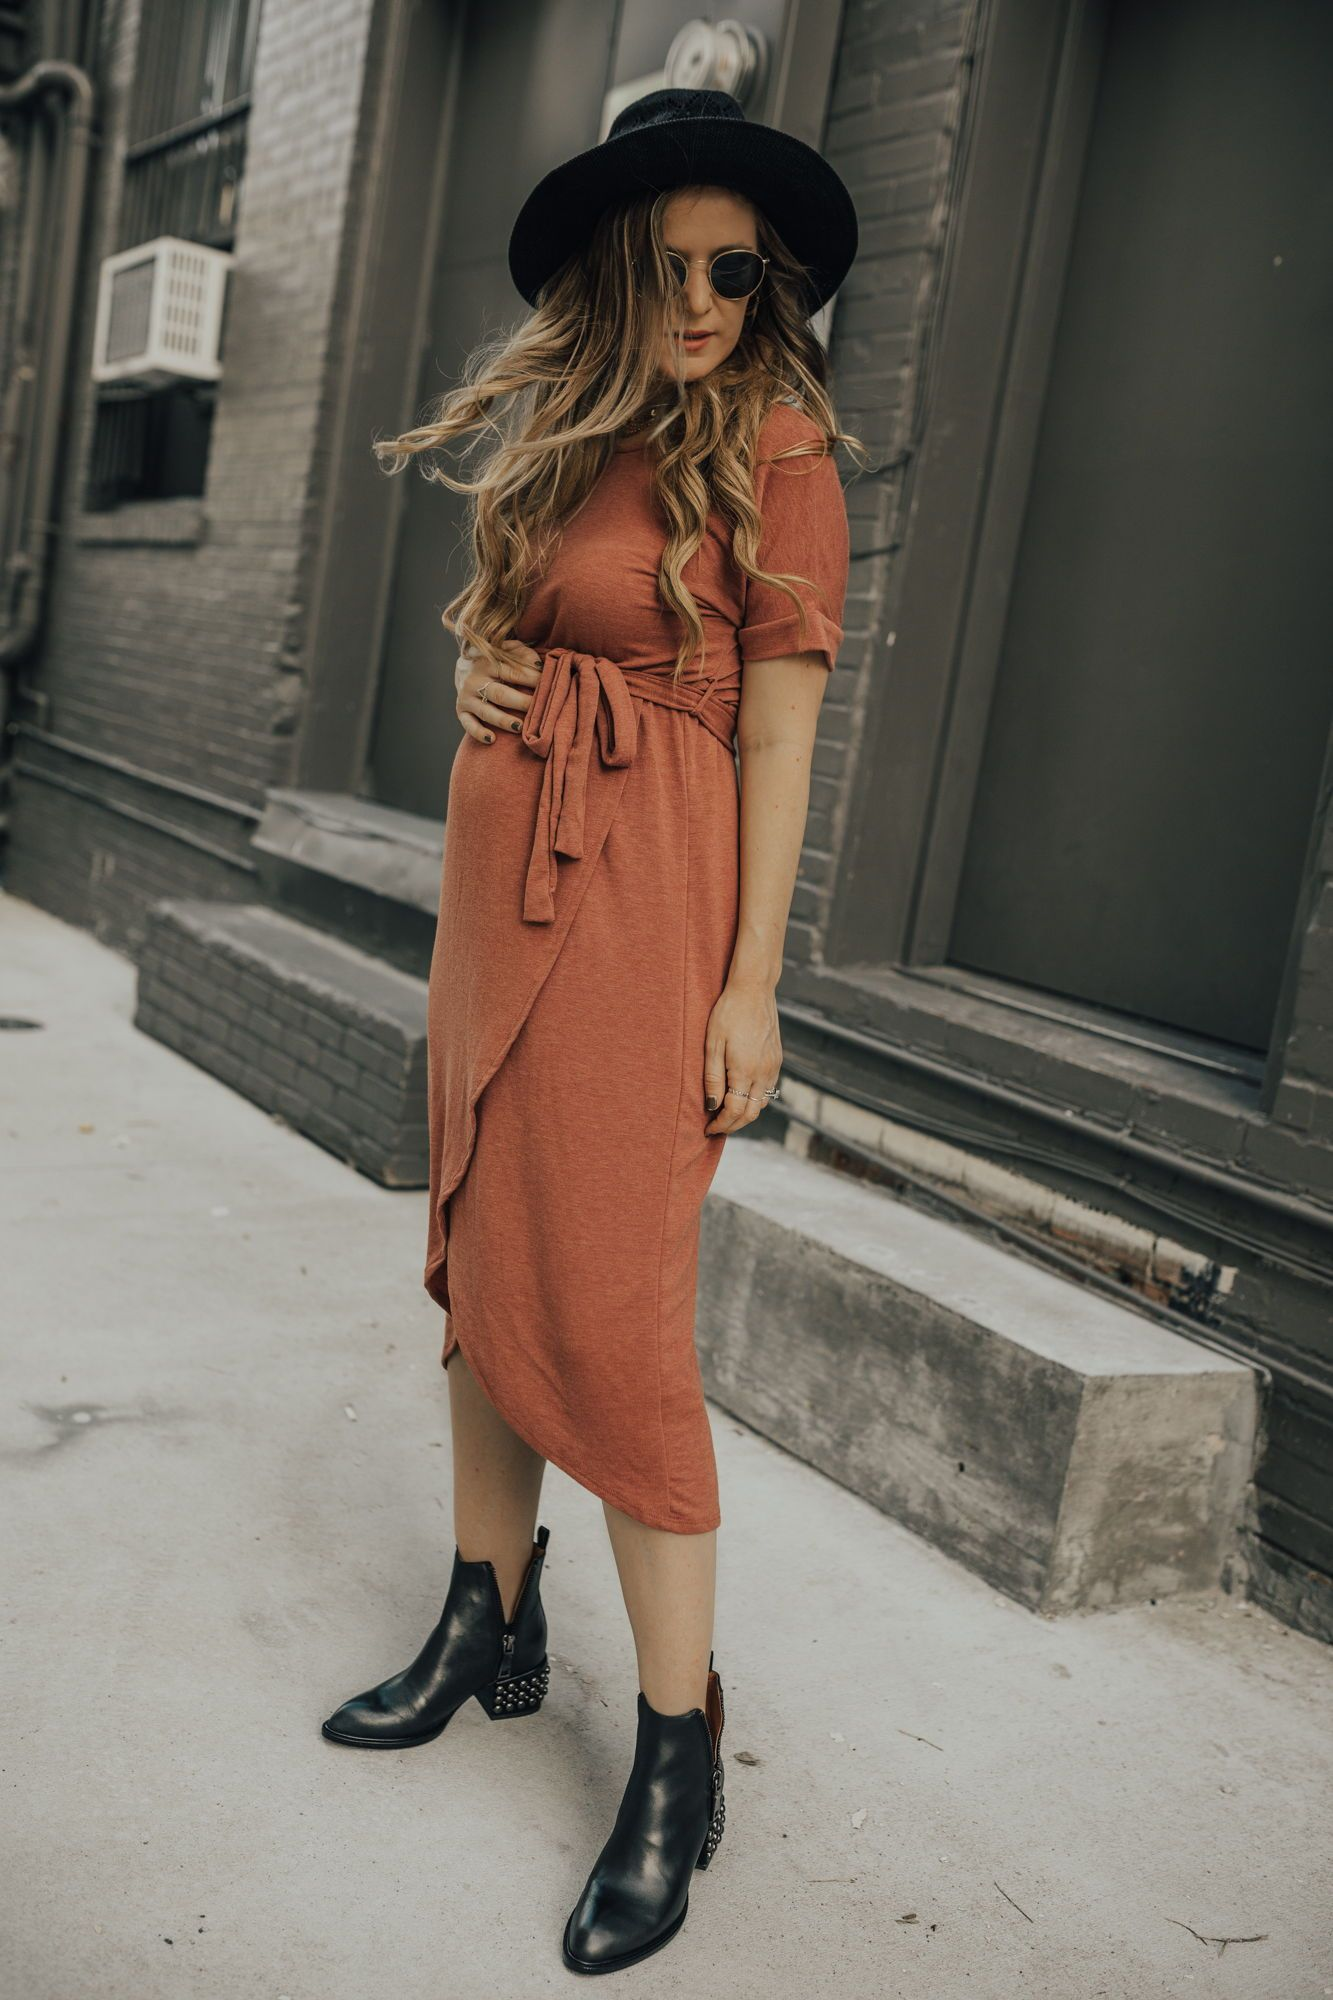 8d278a453f5 Edgy maternity outfit styled with wrap dress